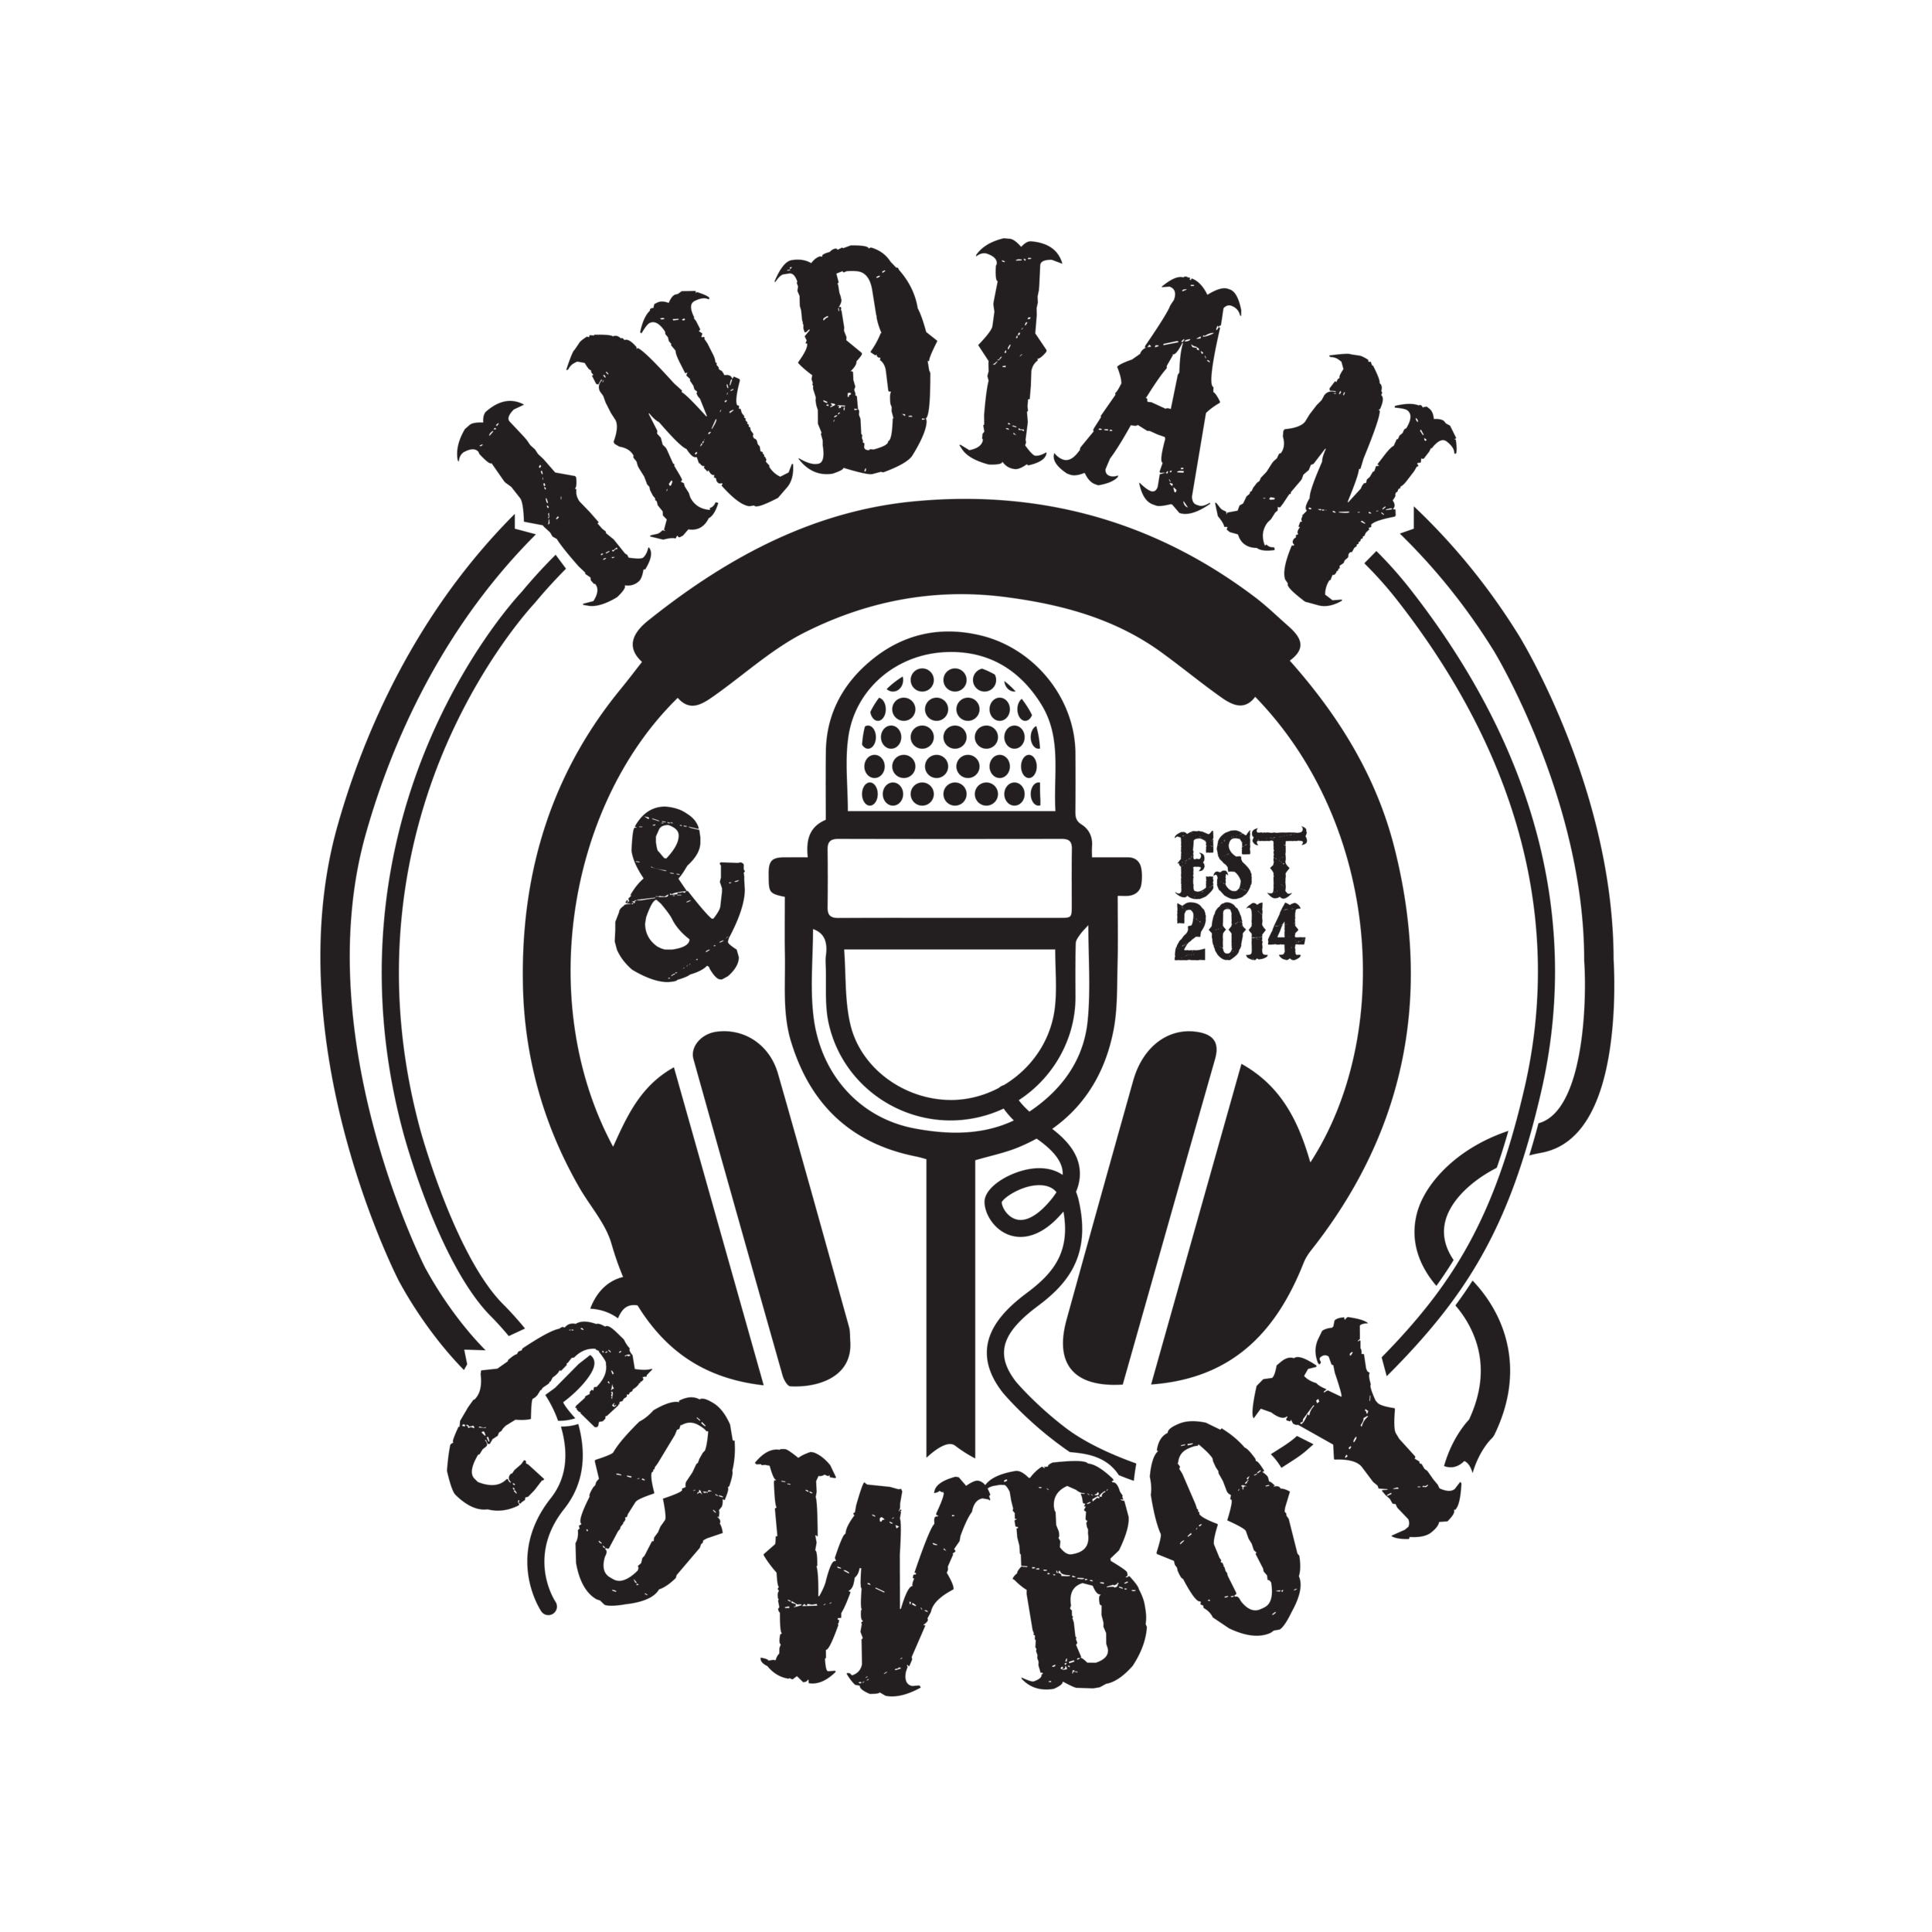 Indian_and_Cowboy-logo-onblack-FNL.jpg